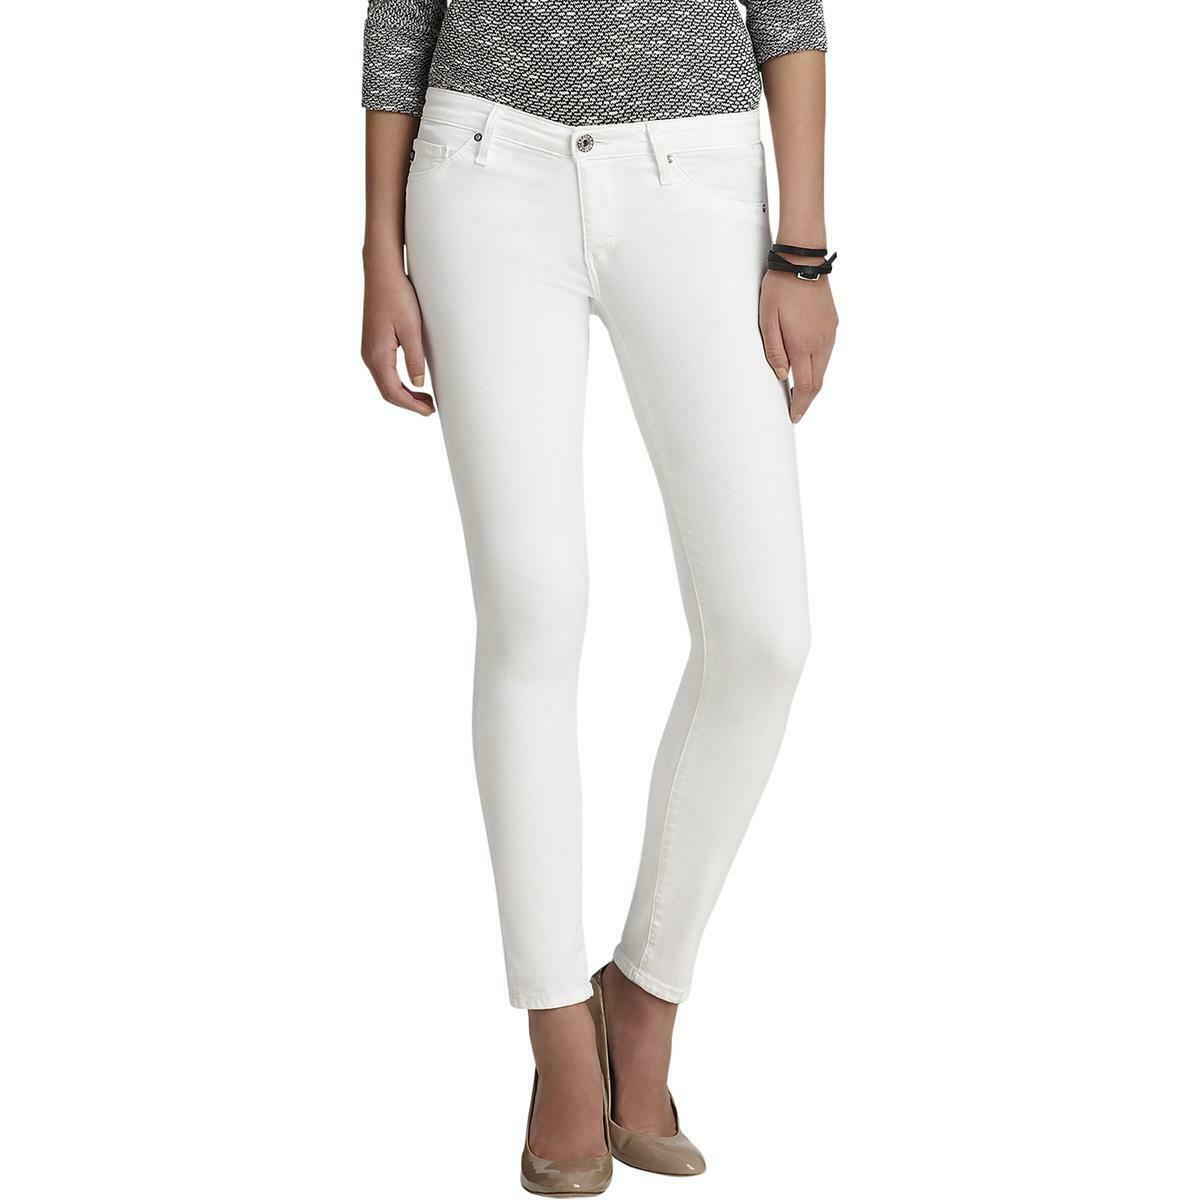 Adriano goldschmied Womens The Legging White Low-Rise Ankle Jeans 28 BHFO 5521